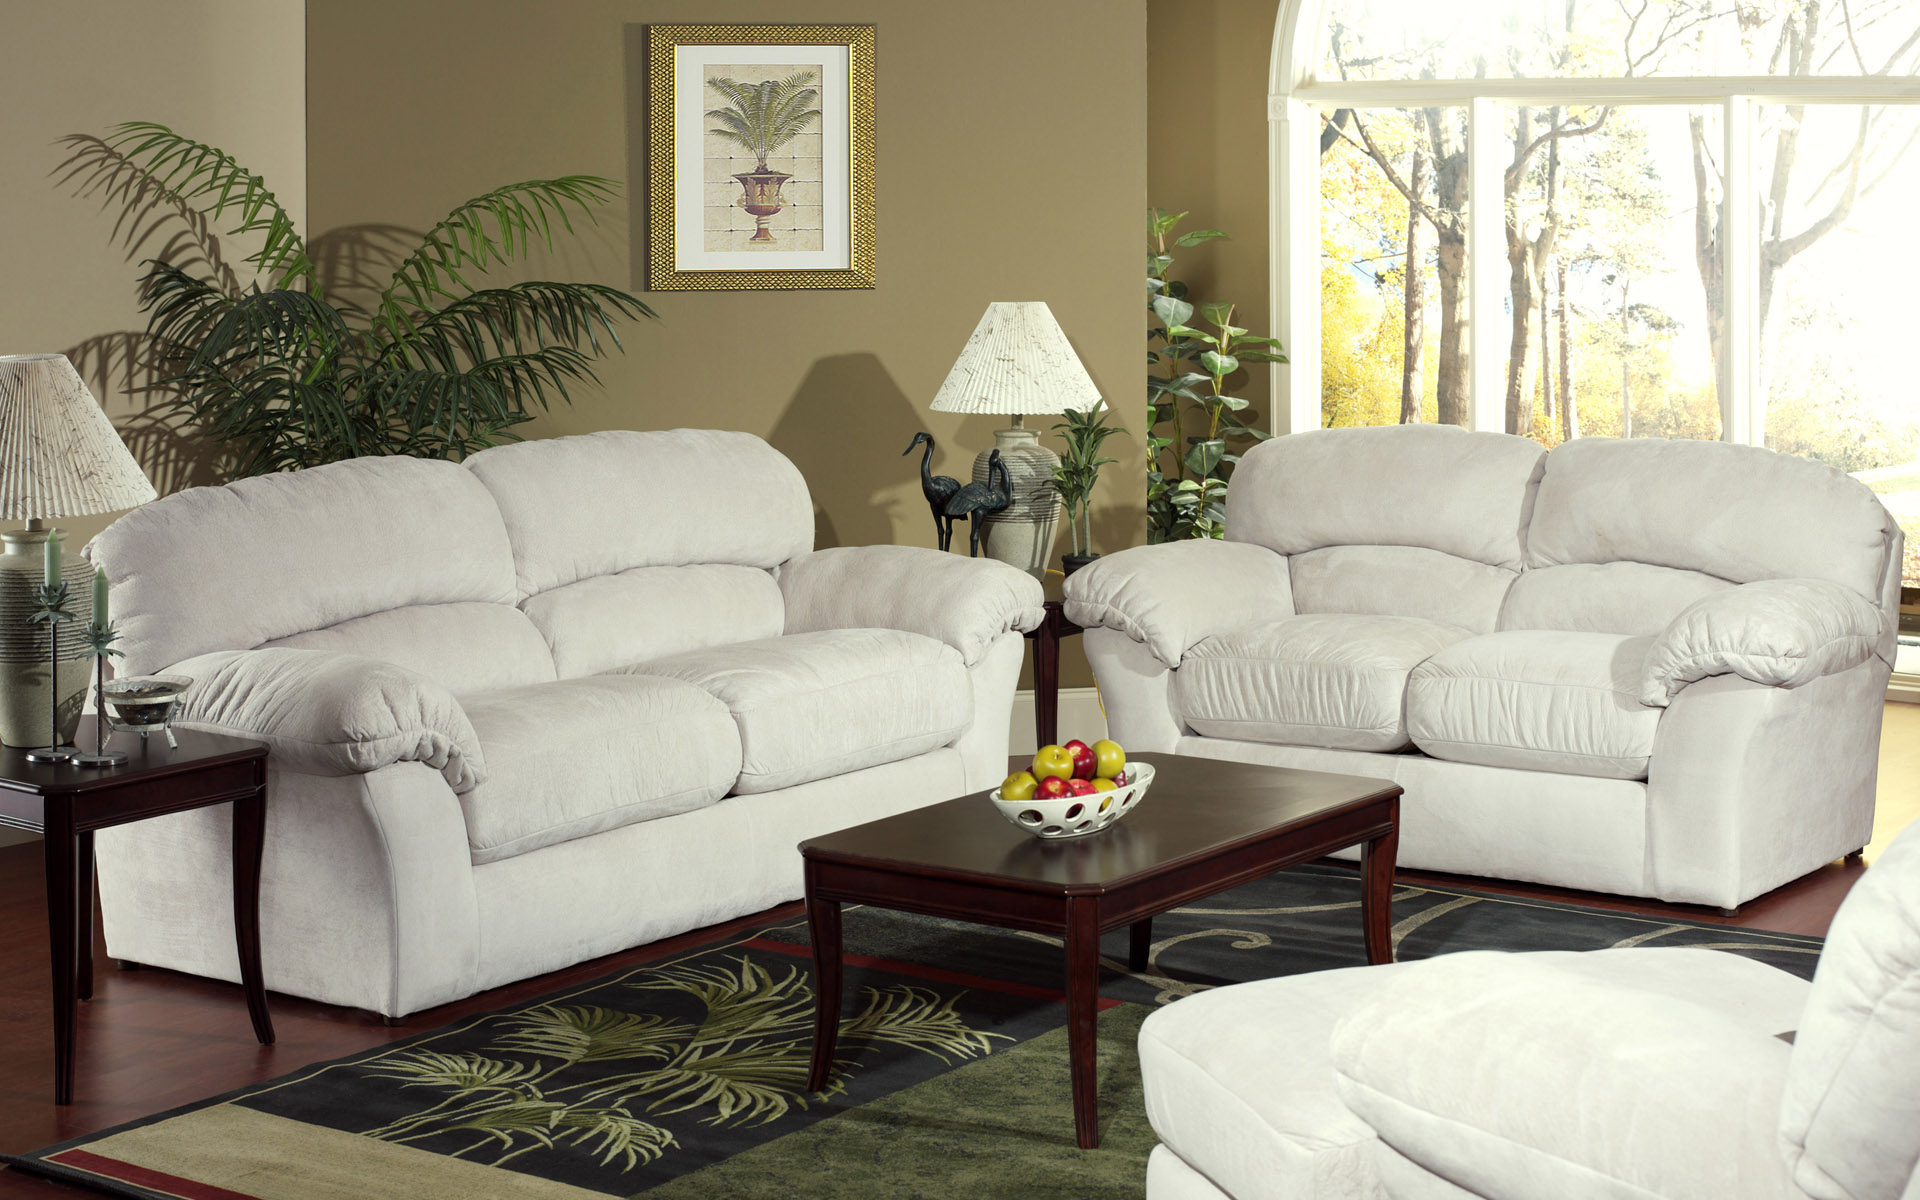 http://www.hgnv.com/wp-content/uploads/2014/11/White-Sofa-Sets-For-Living-Room-Cozy-Contemporary-Living-Room-Furniture.jpg